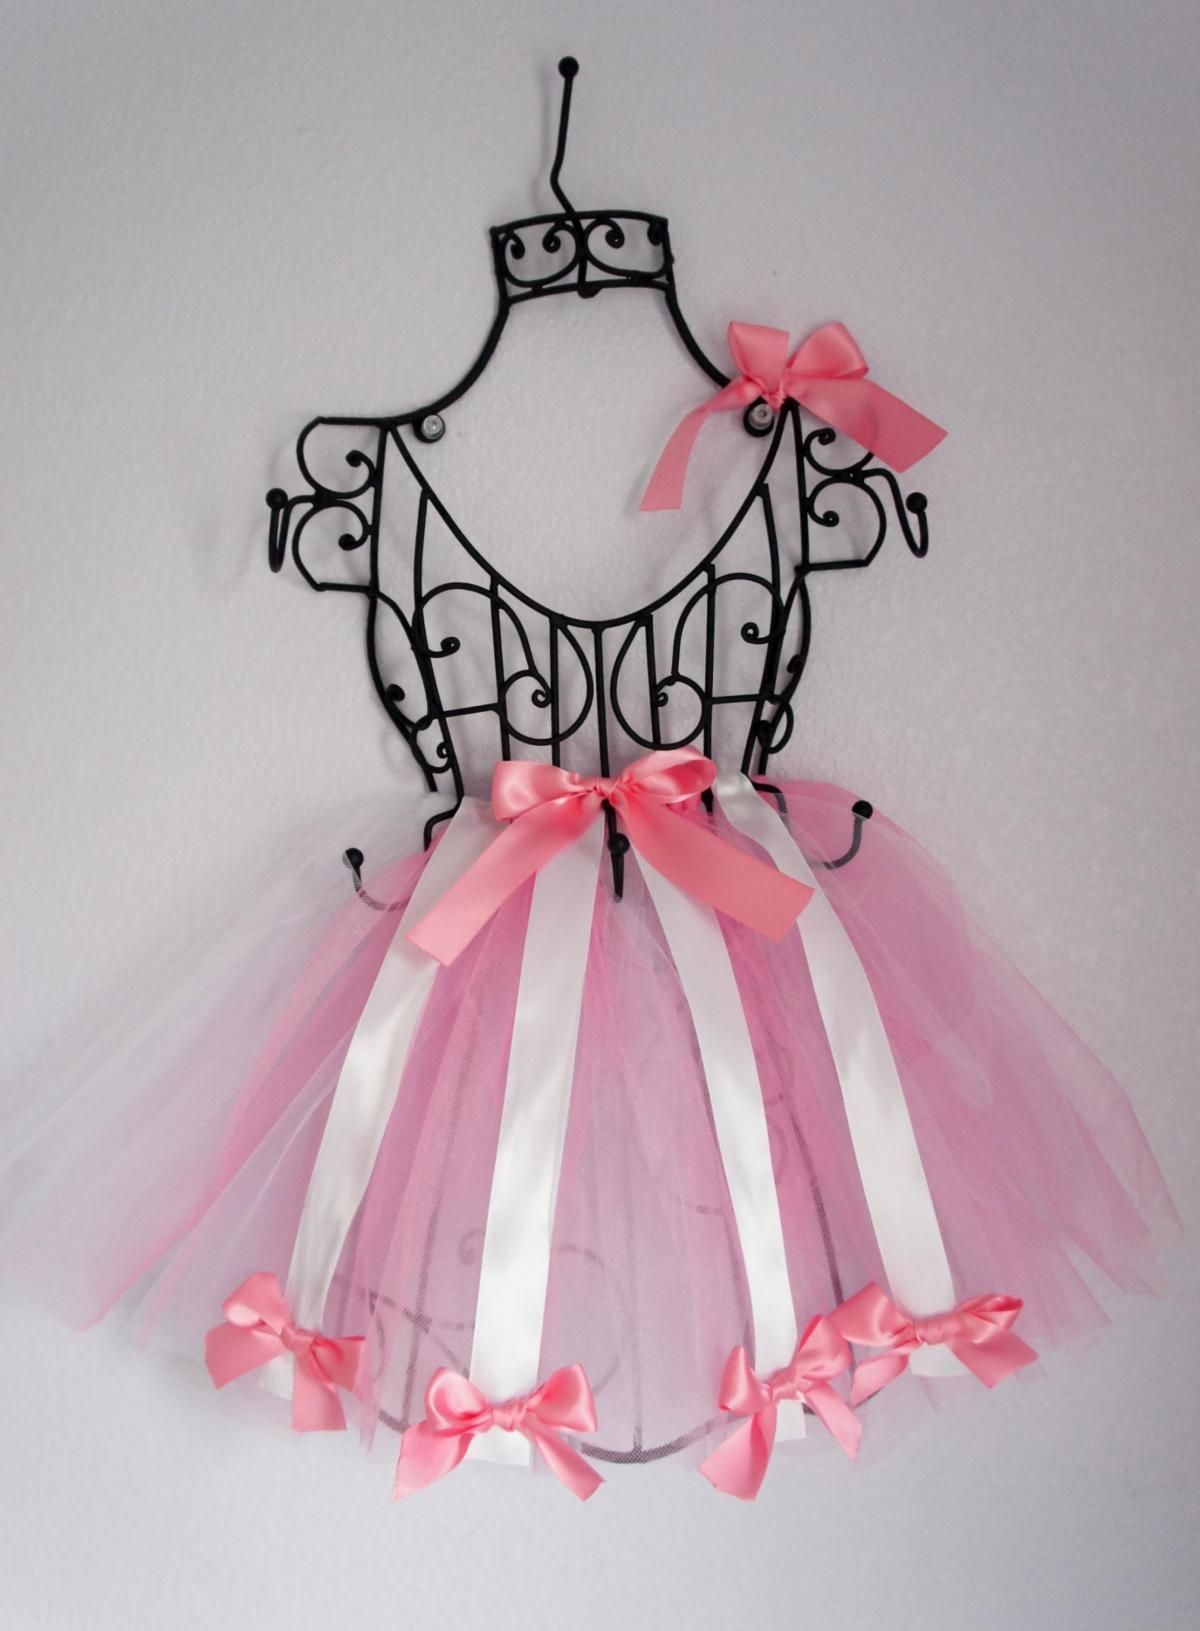 Tutu hair bow holder wire frame french vintage inspired baby